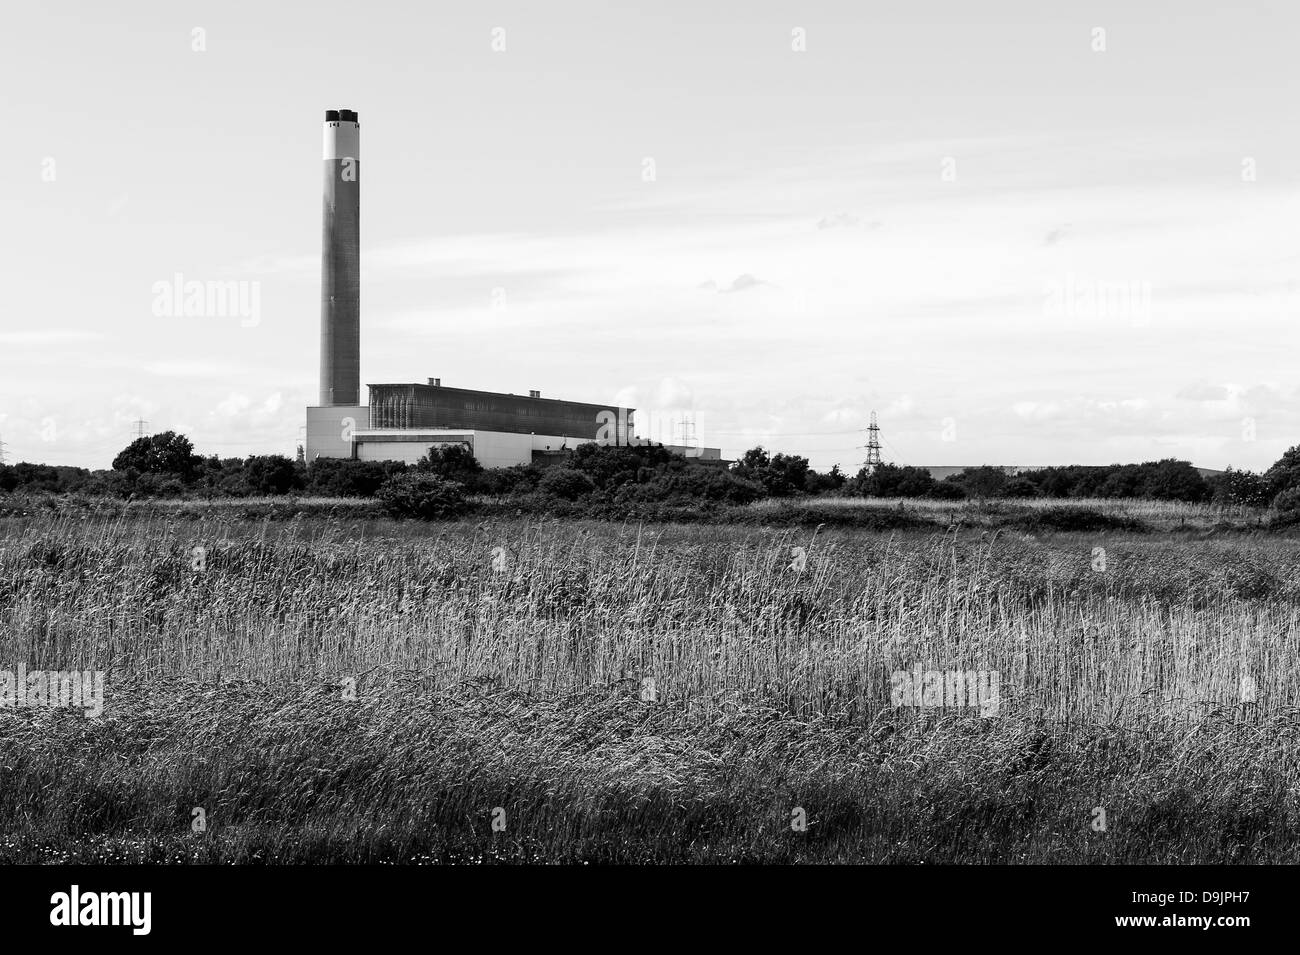 Fawley Power Station is an oil-fired power station located on the western side of Southampton Wate - Stock Image